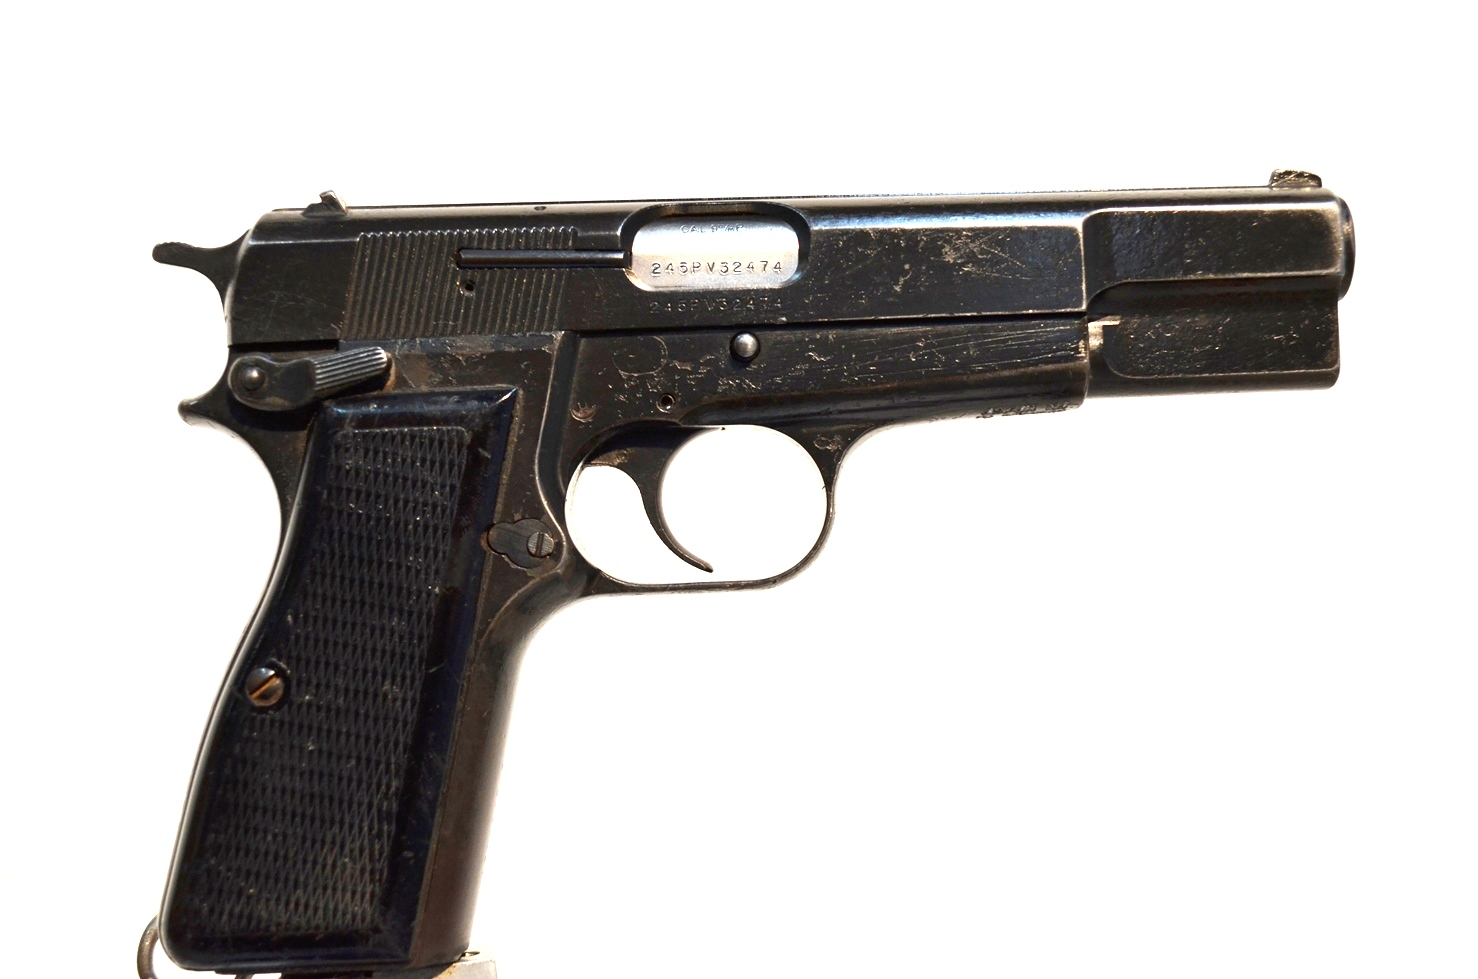 FN Browning Hi Power 9mm Surplus MK-II # 245PV32474